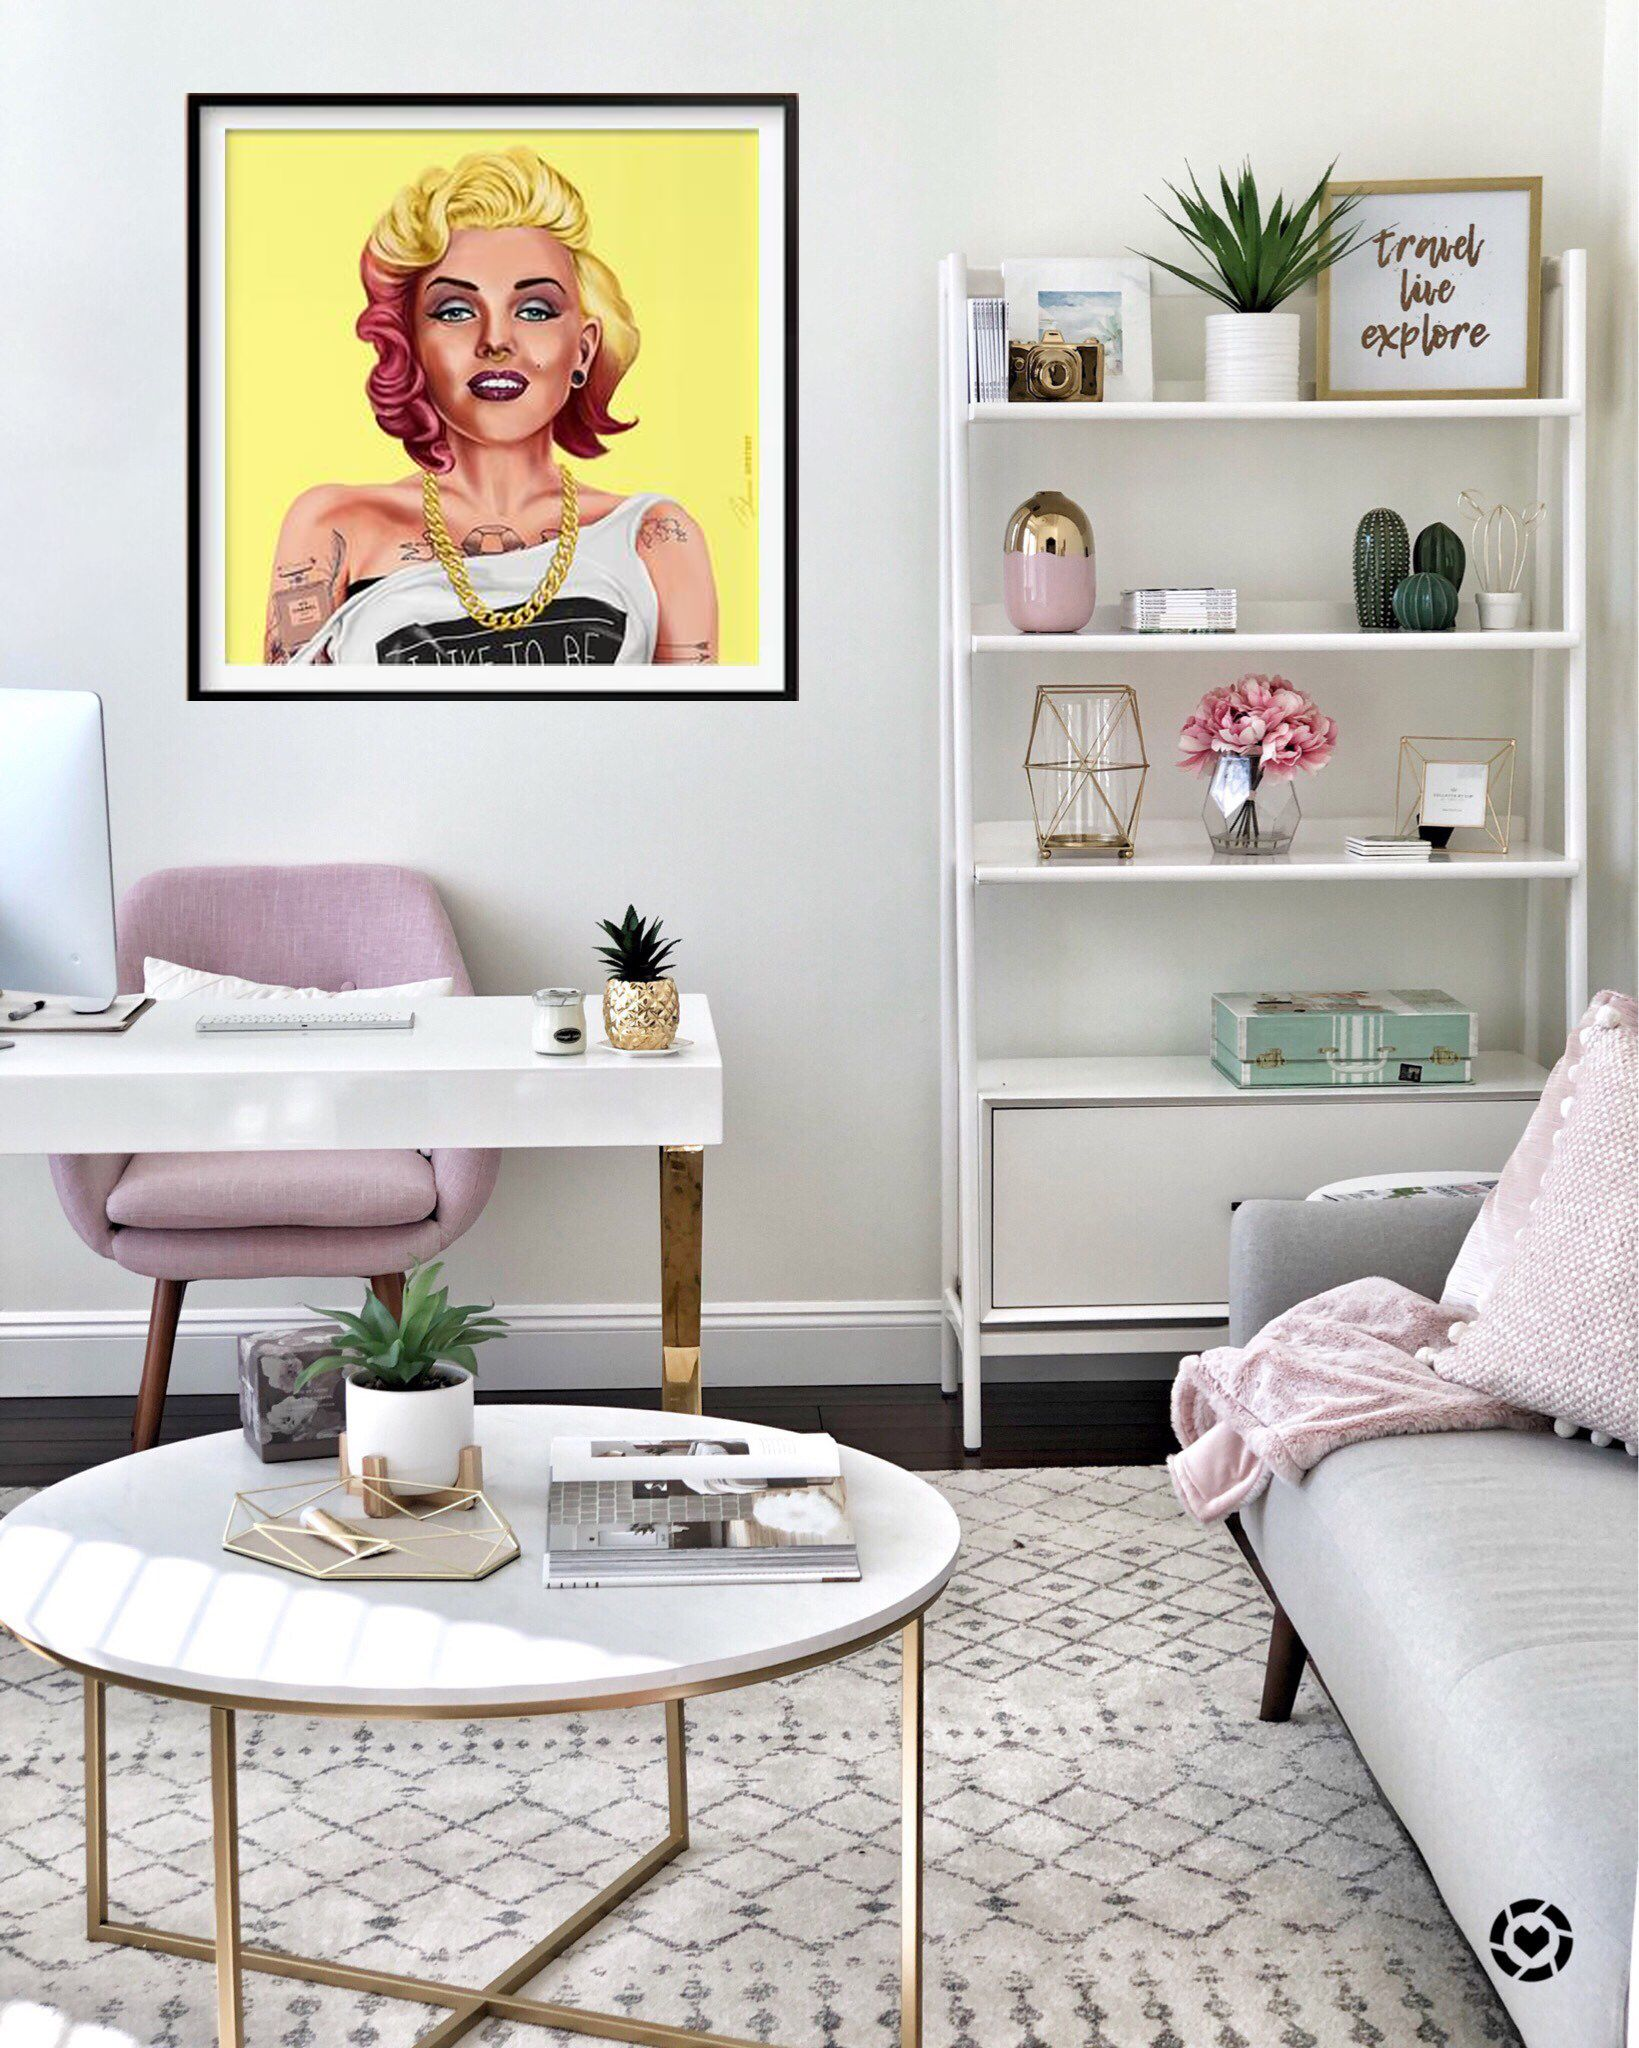 SALE!! MARILYN MONROE Hipster Wall Papers 70x70cm On My